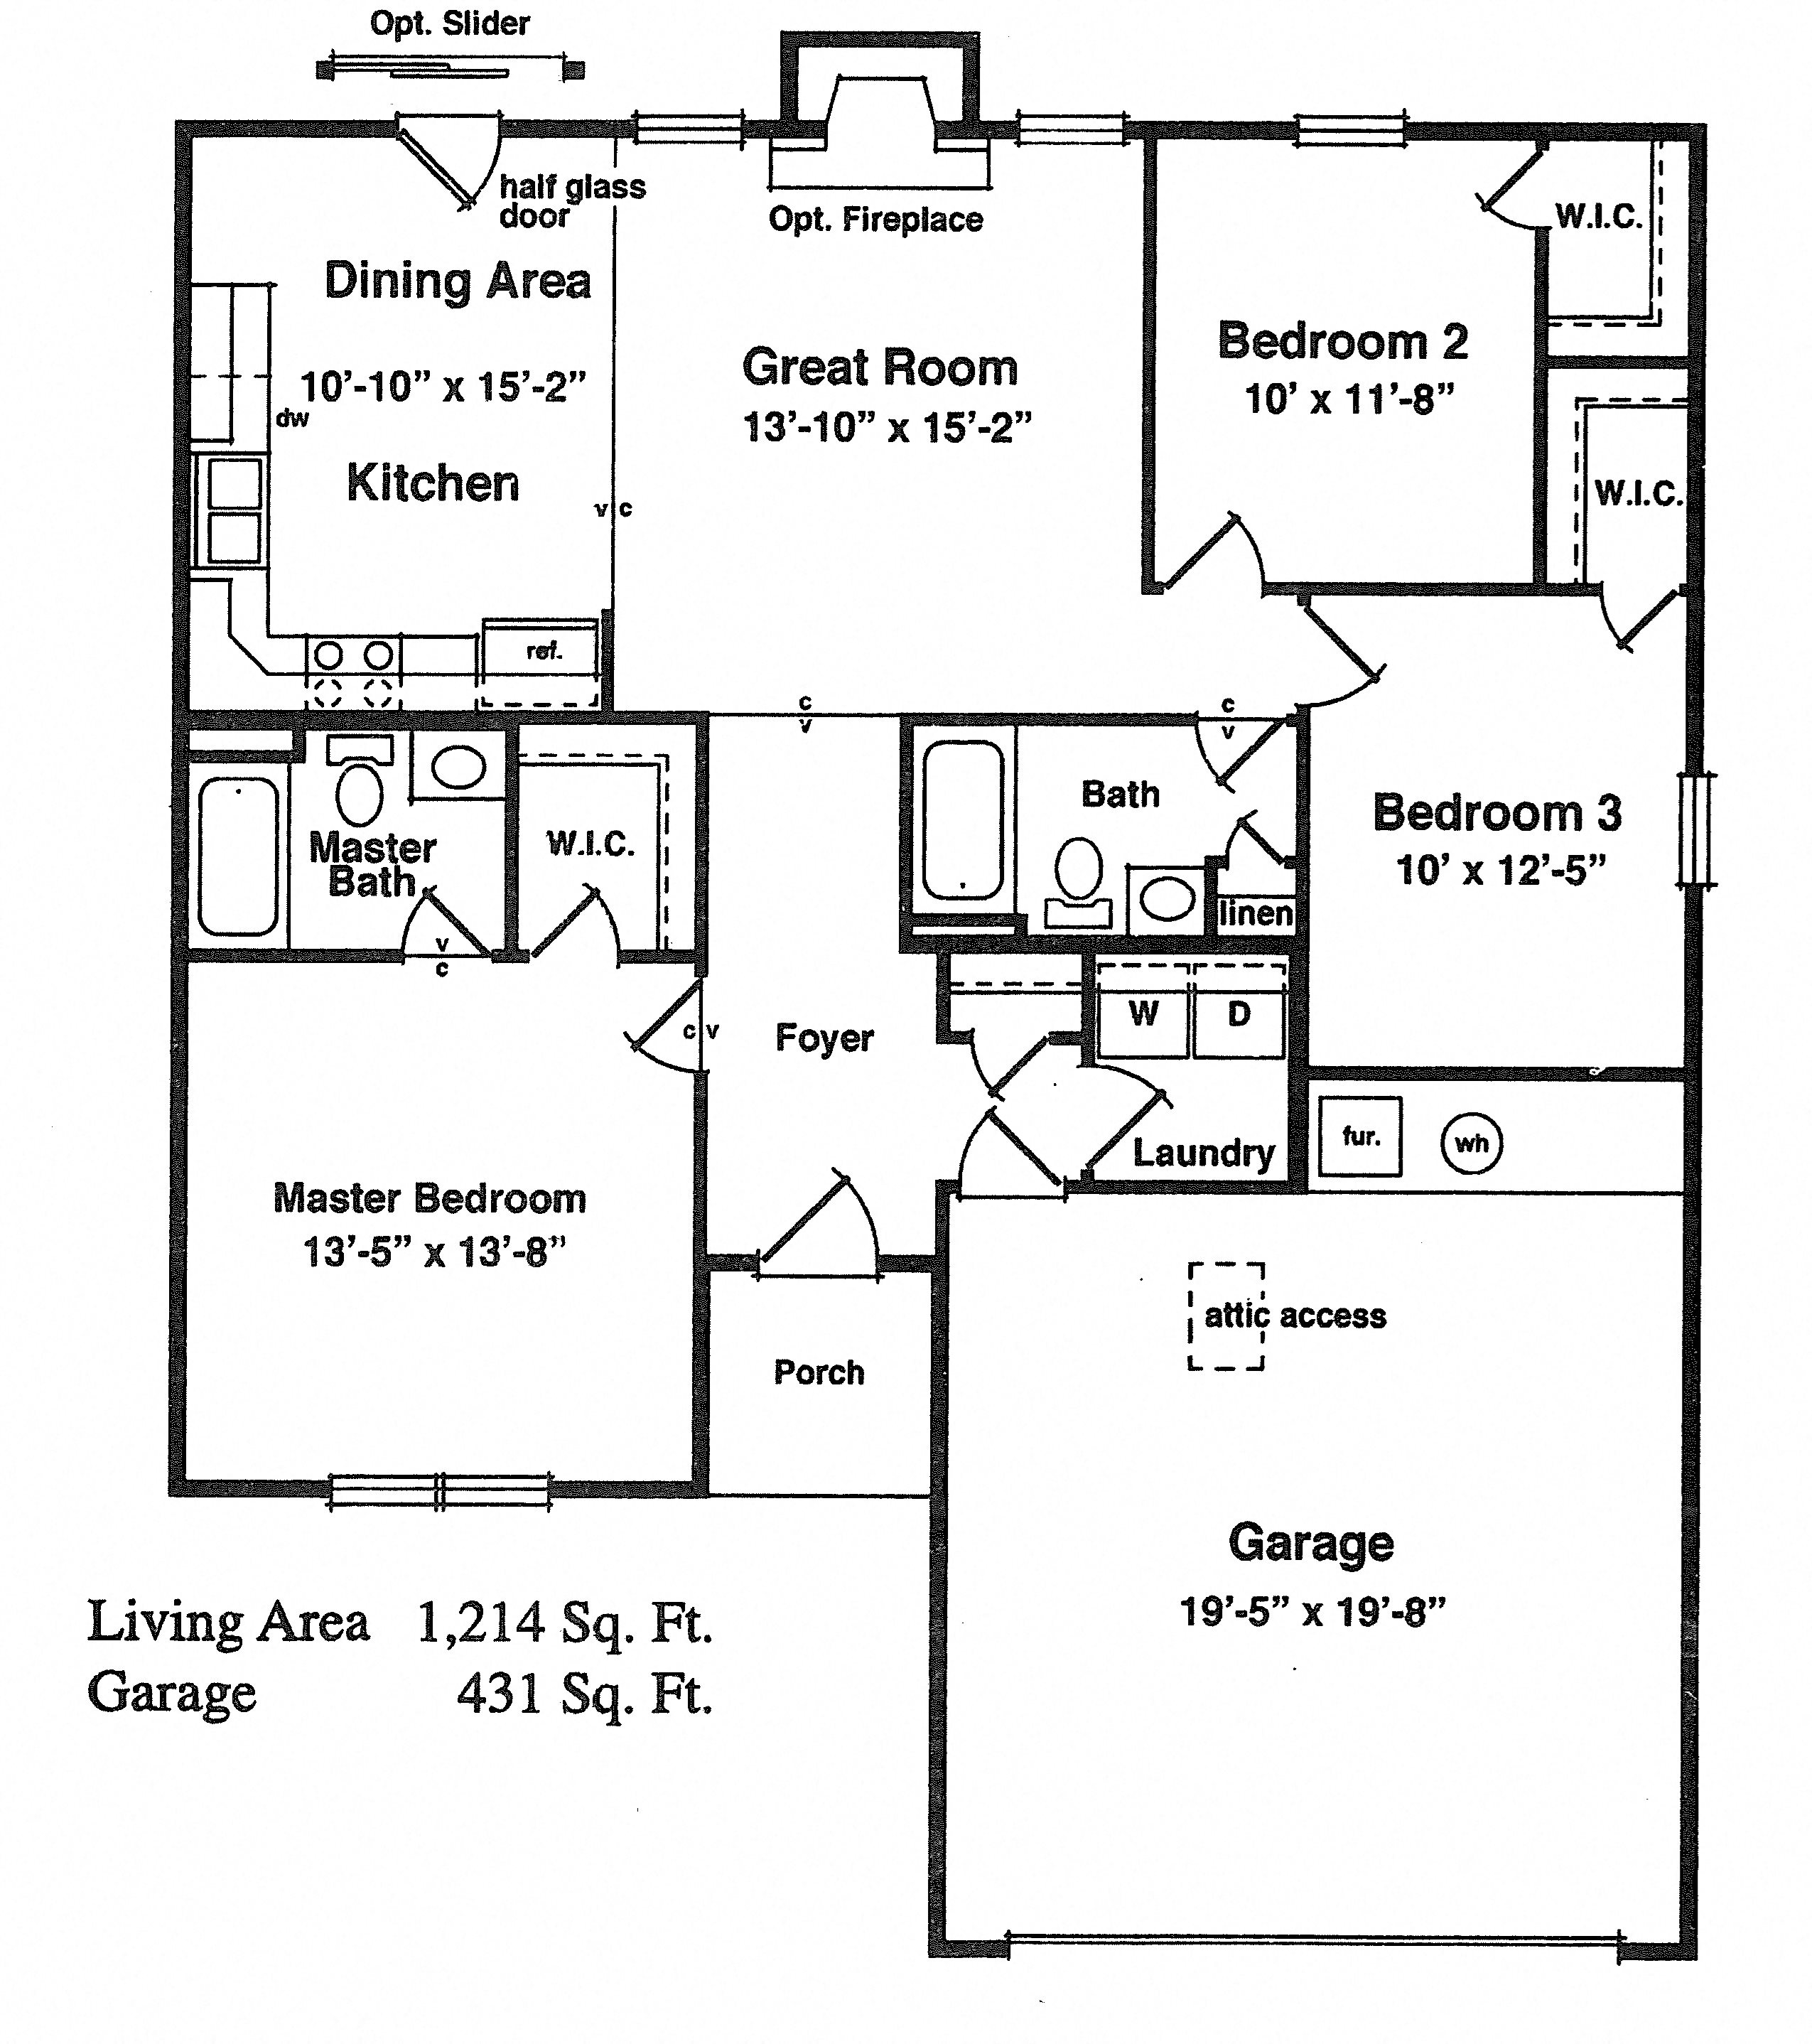 Stone Canyon:  Fort Wayne, IN 46808 Floor Plan 6